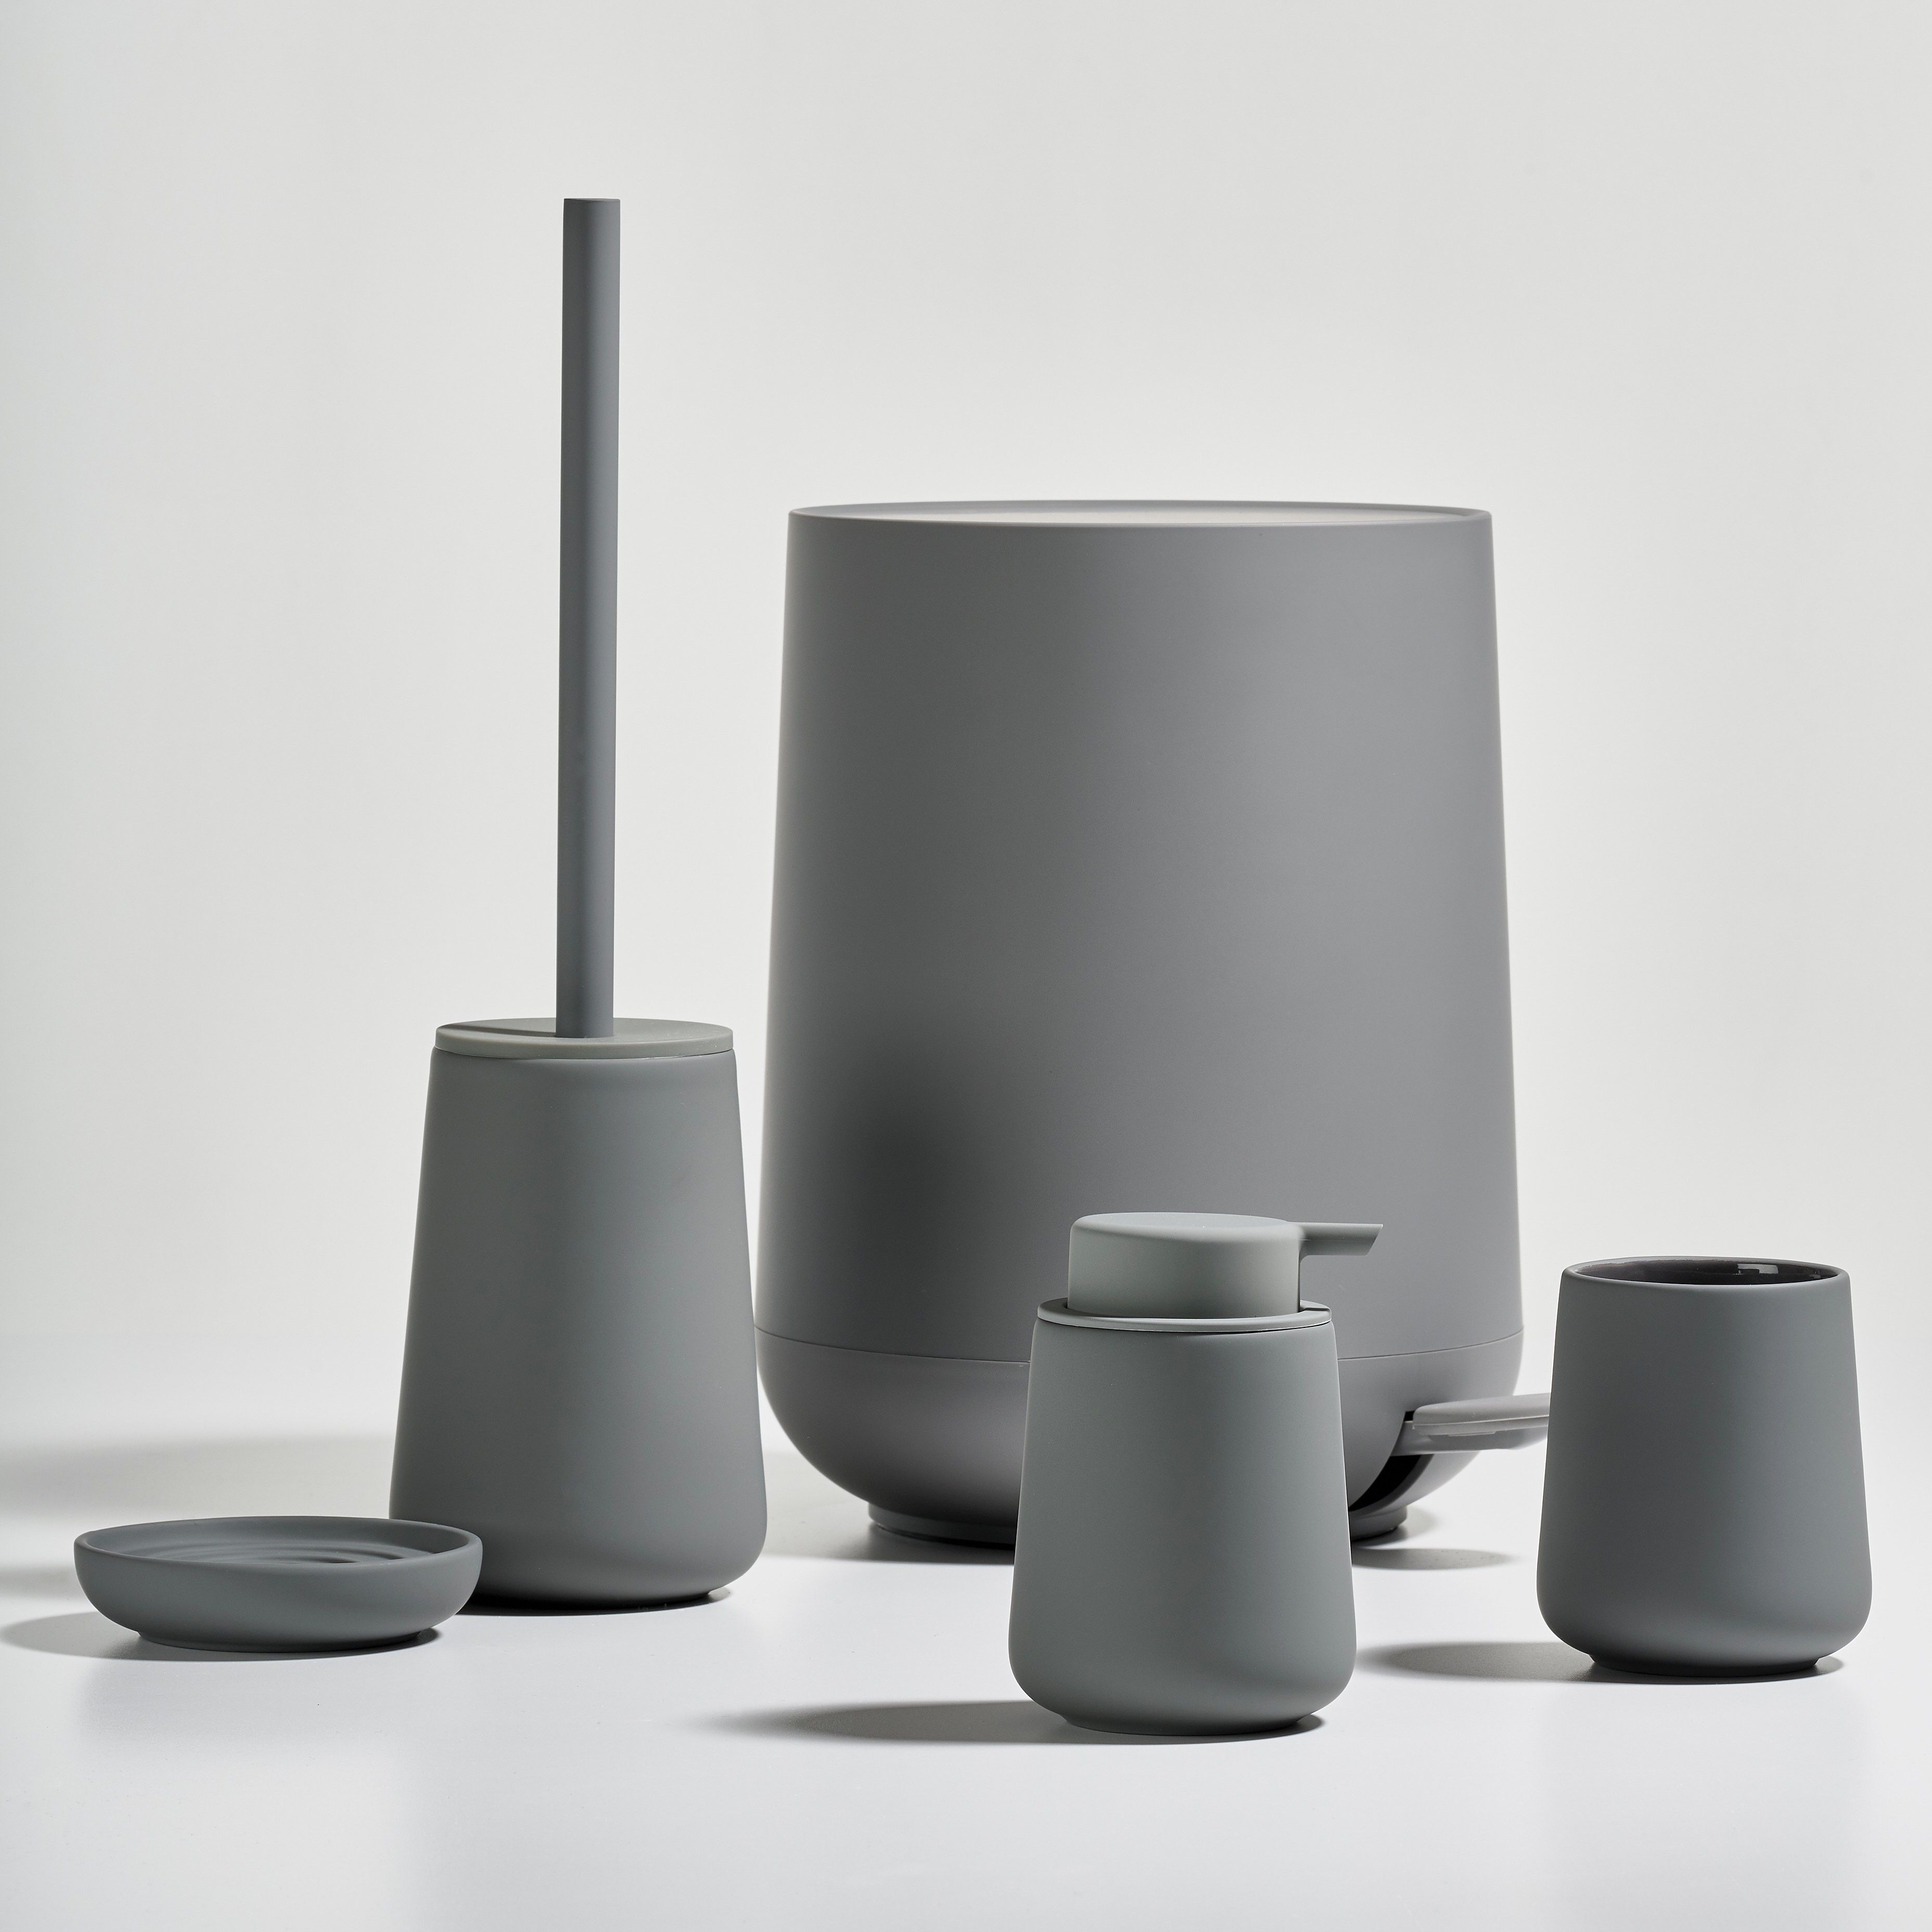 Designstuff Offers A Wide Online Selection Of Scandinavian